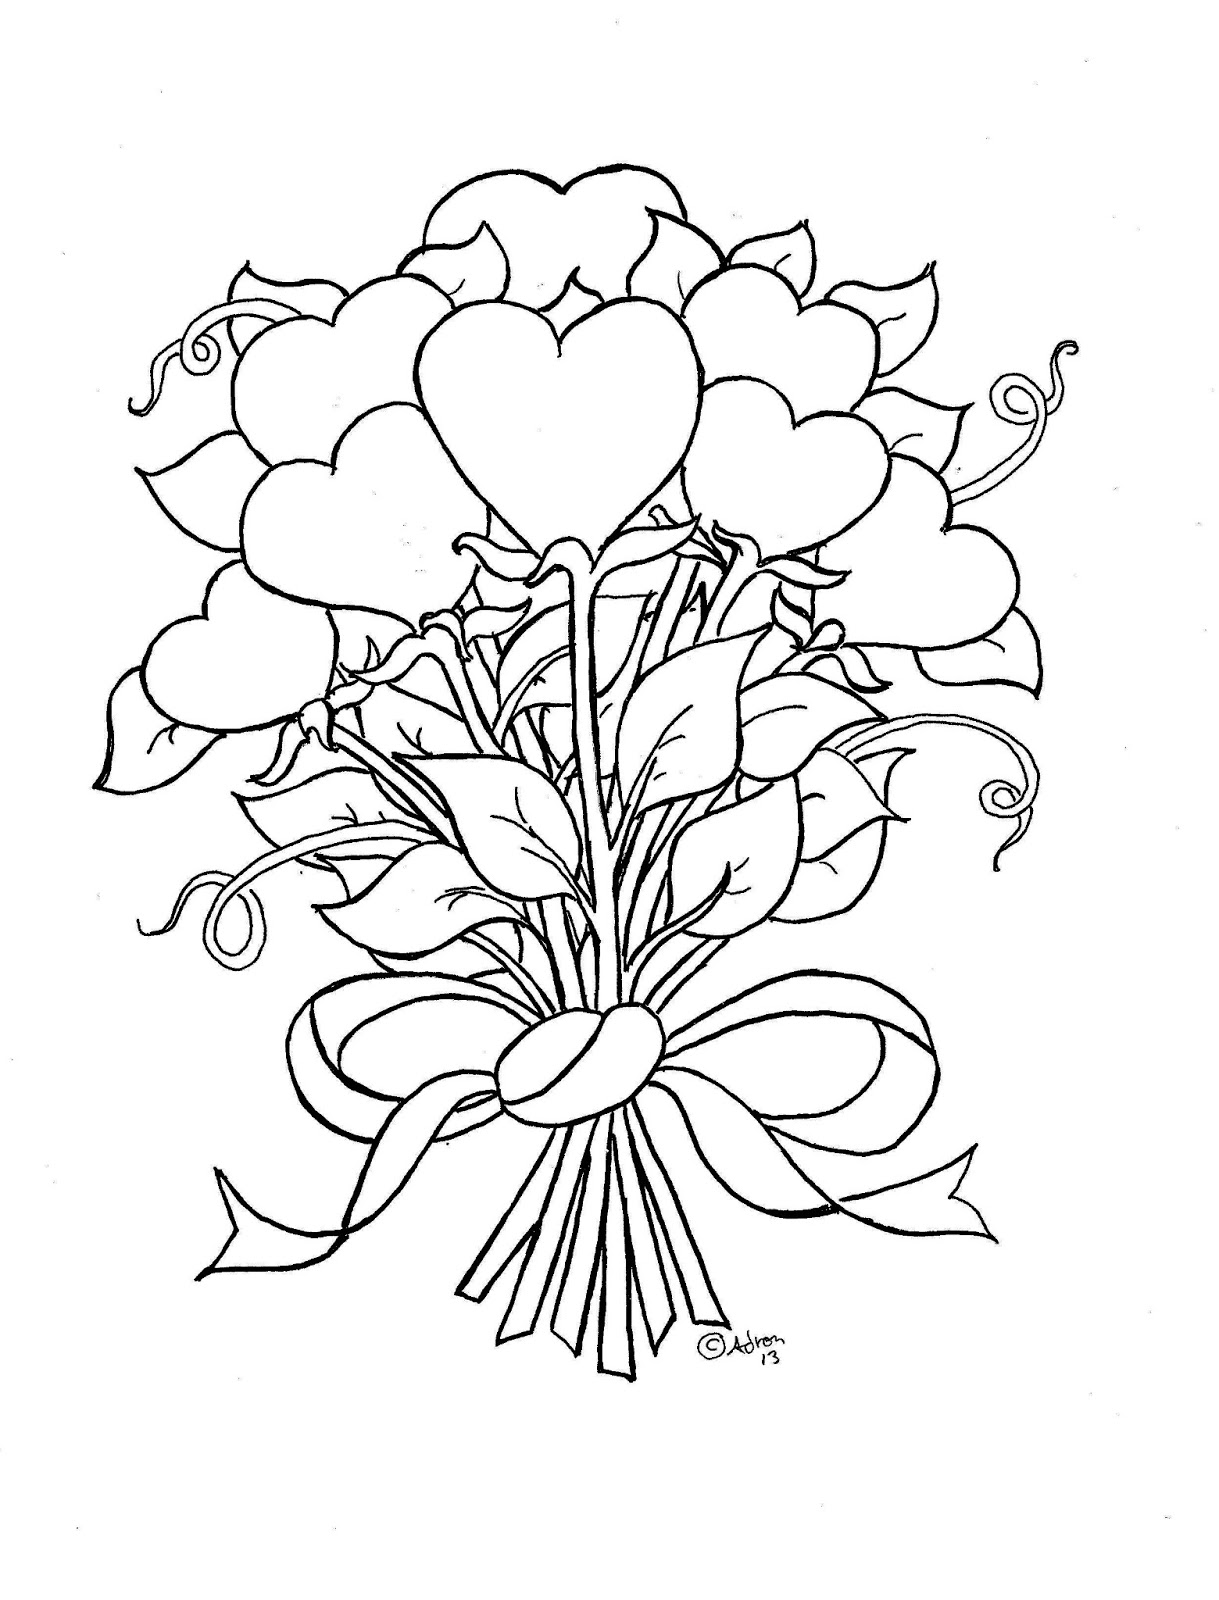 coloring pictures of flowers and hearts 35 free printable heart coloring pages hearts of coloring flowers pictures and